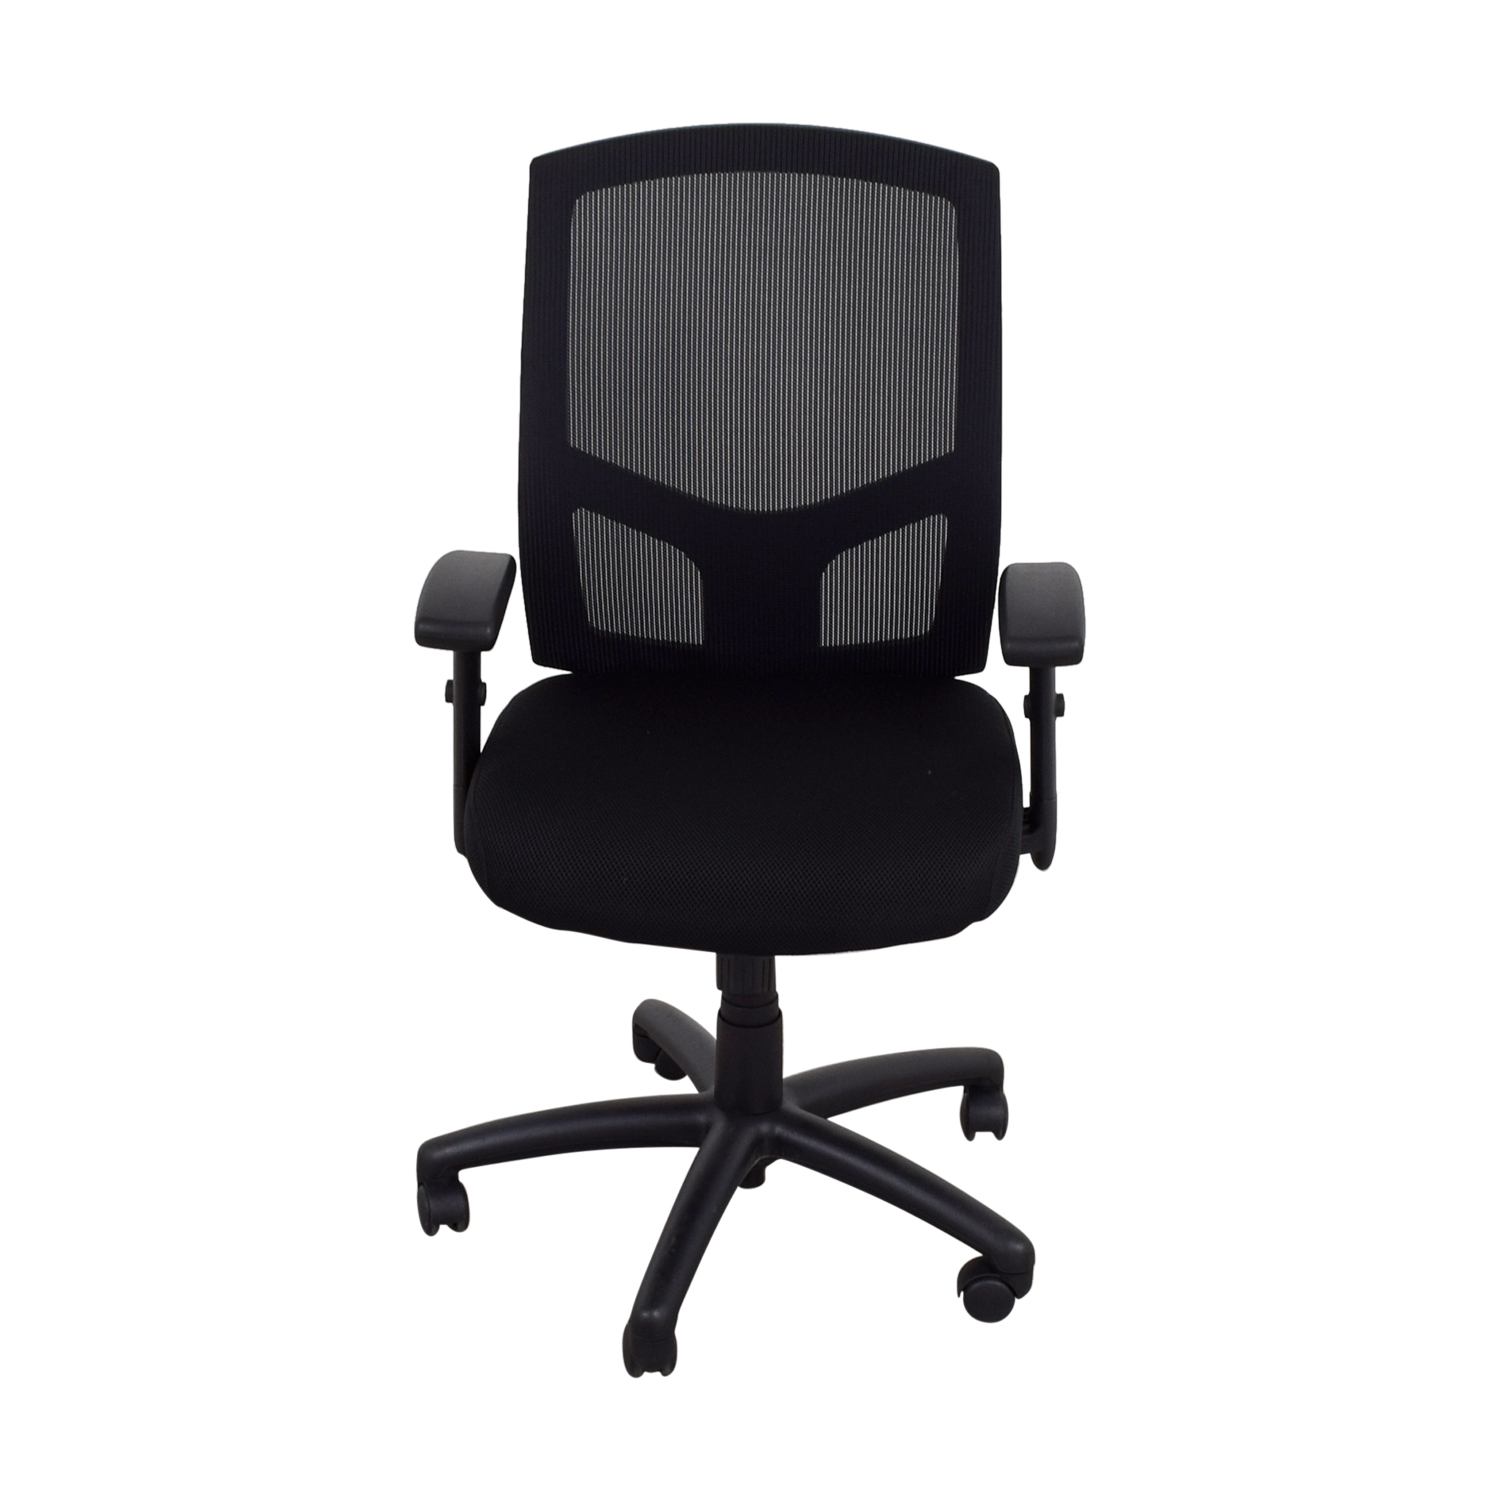 Black Office Chairs 87 Off Offices To Go Offices To Go Black Office Chair